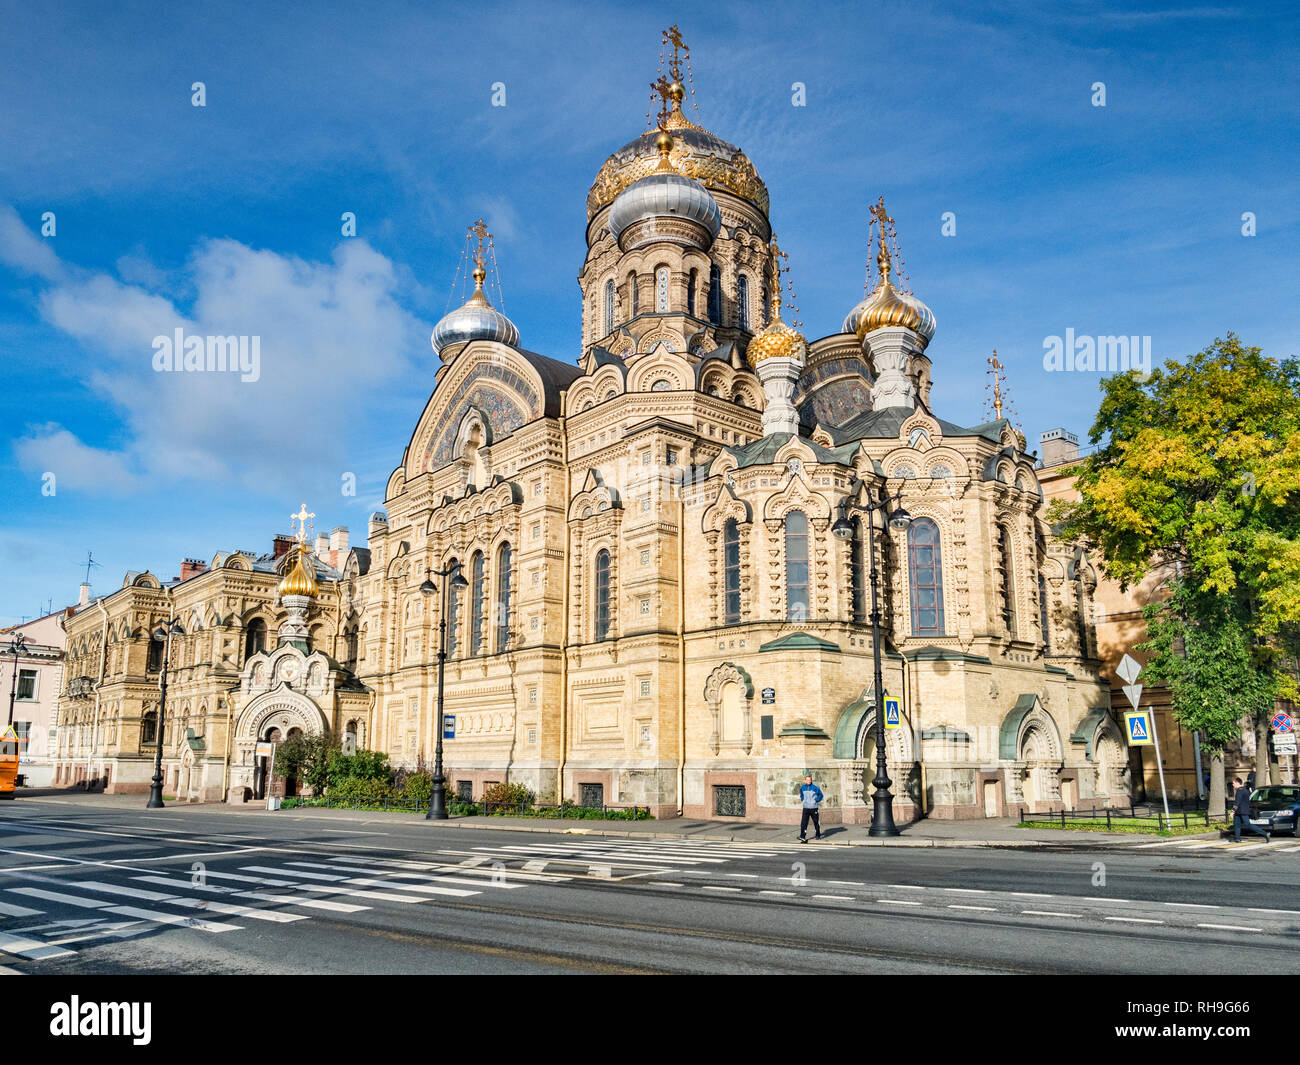 18 September 2018: St Petersburg, Russia - Church of the Assumption of Mary, on the Neva Embankment. Stock Photo